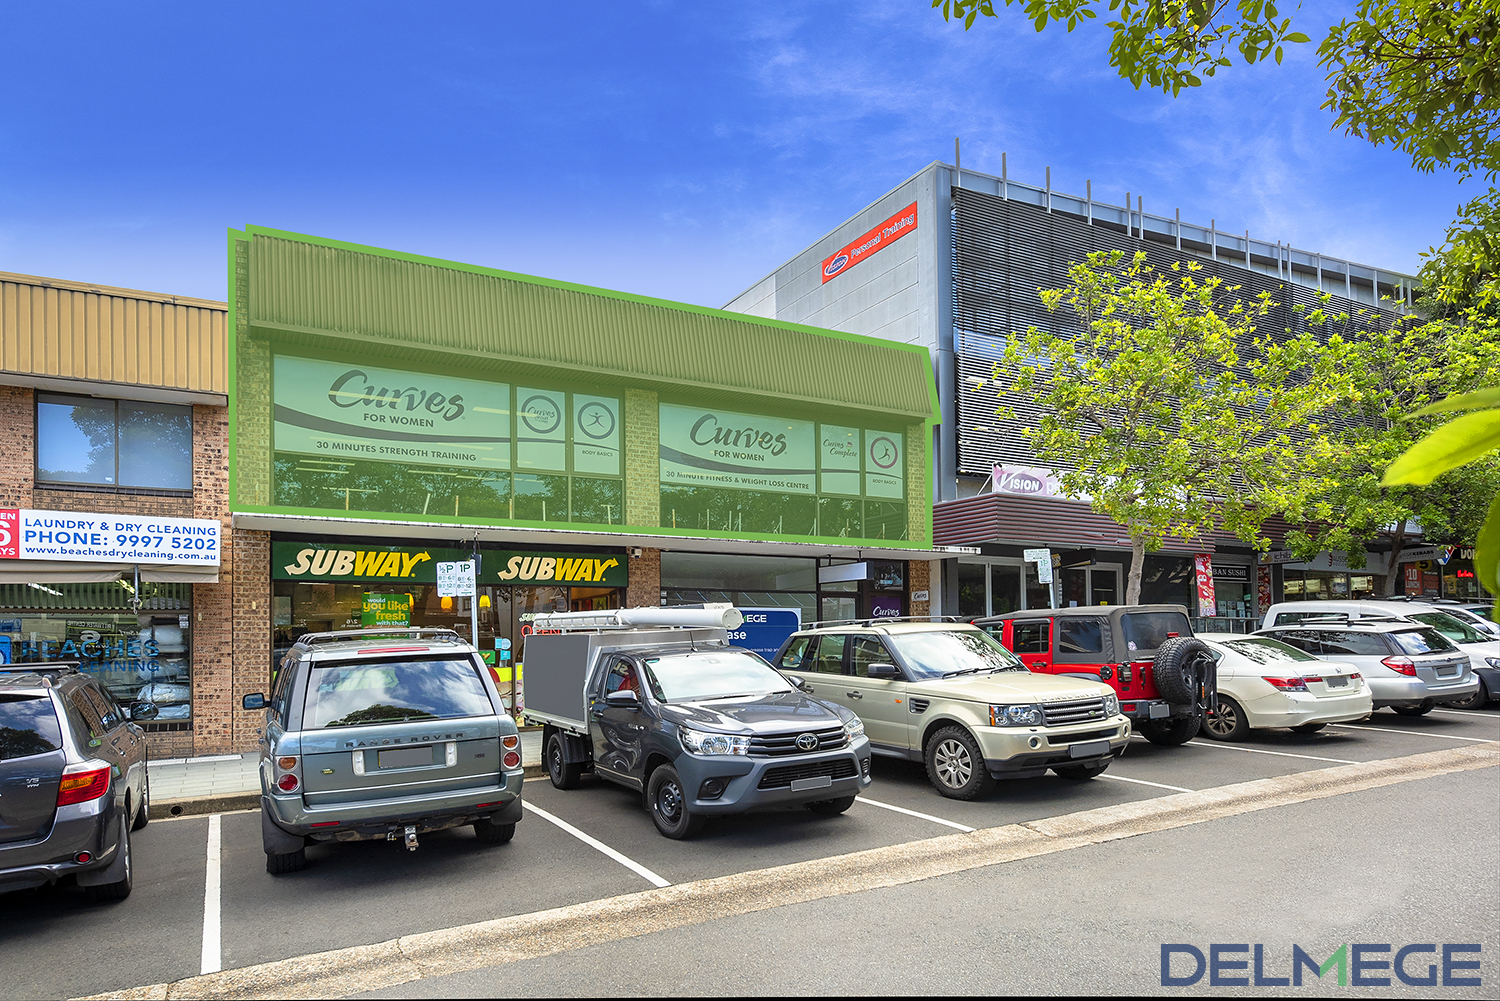 Commercial property for lease in Mona Vale